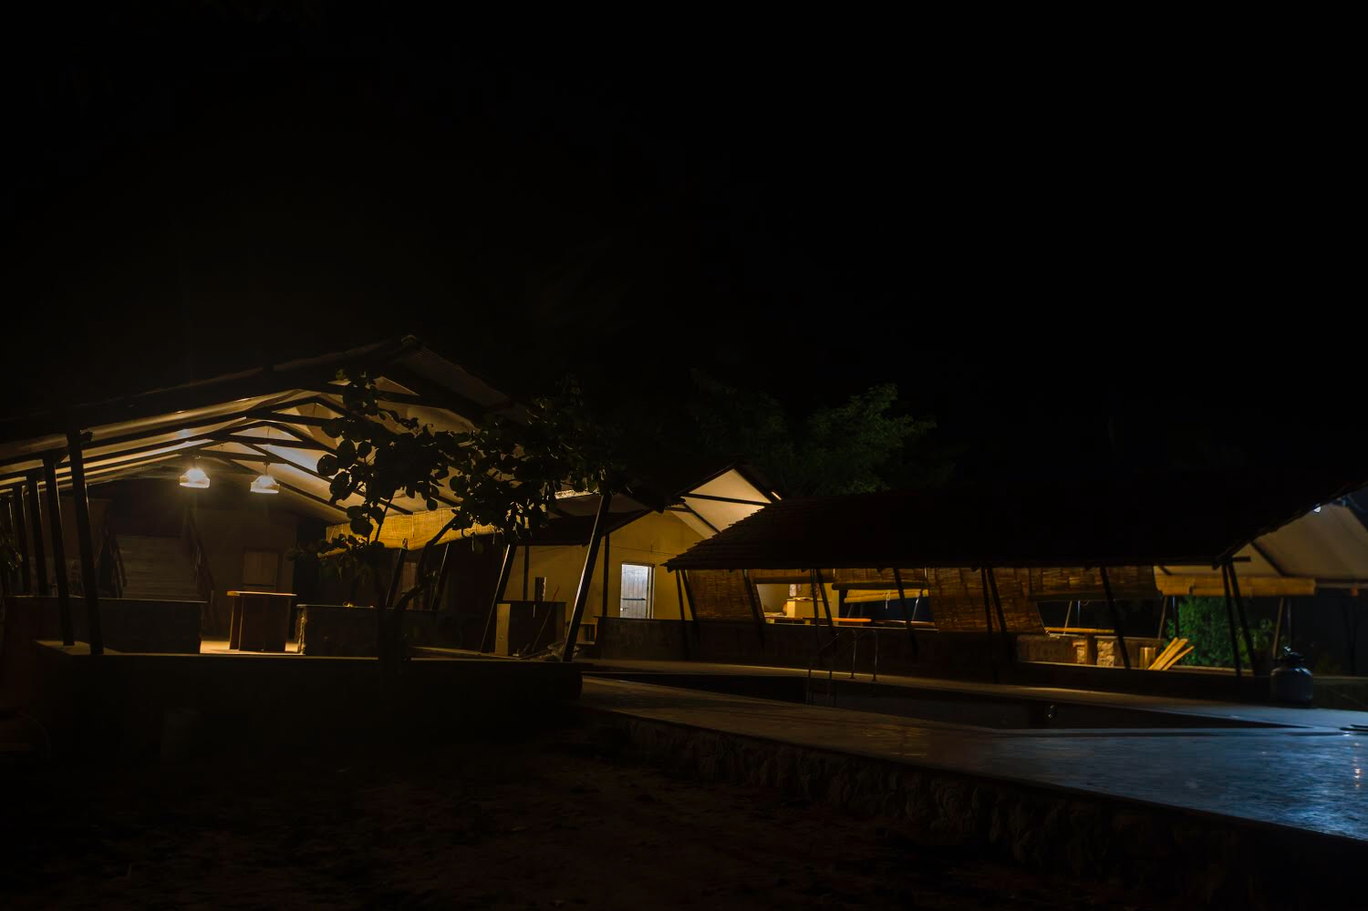 Photo of Maati Jungle Lodge a stay in Bandavgarh away from the hustle bustle of the city. By Shrishty Patel